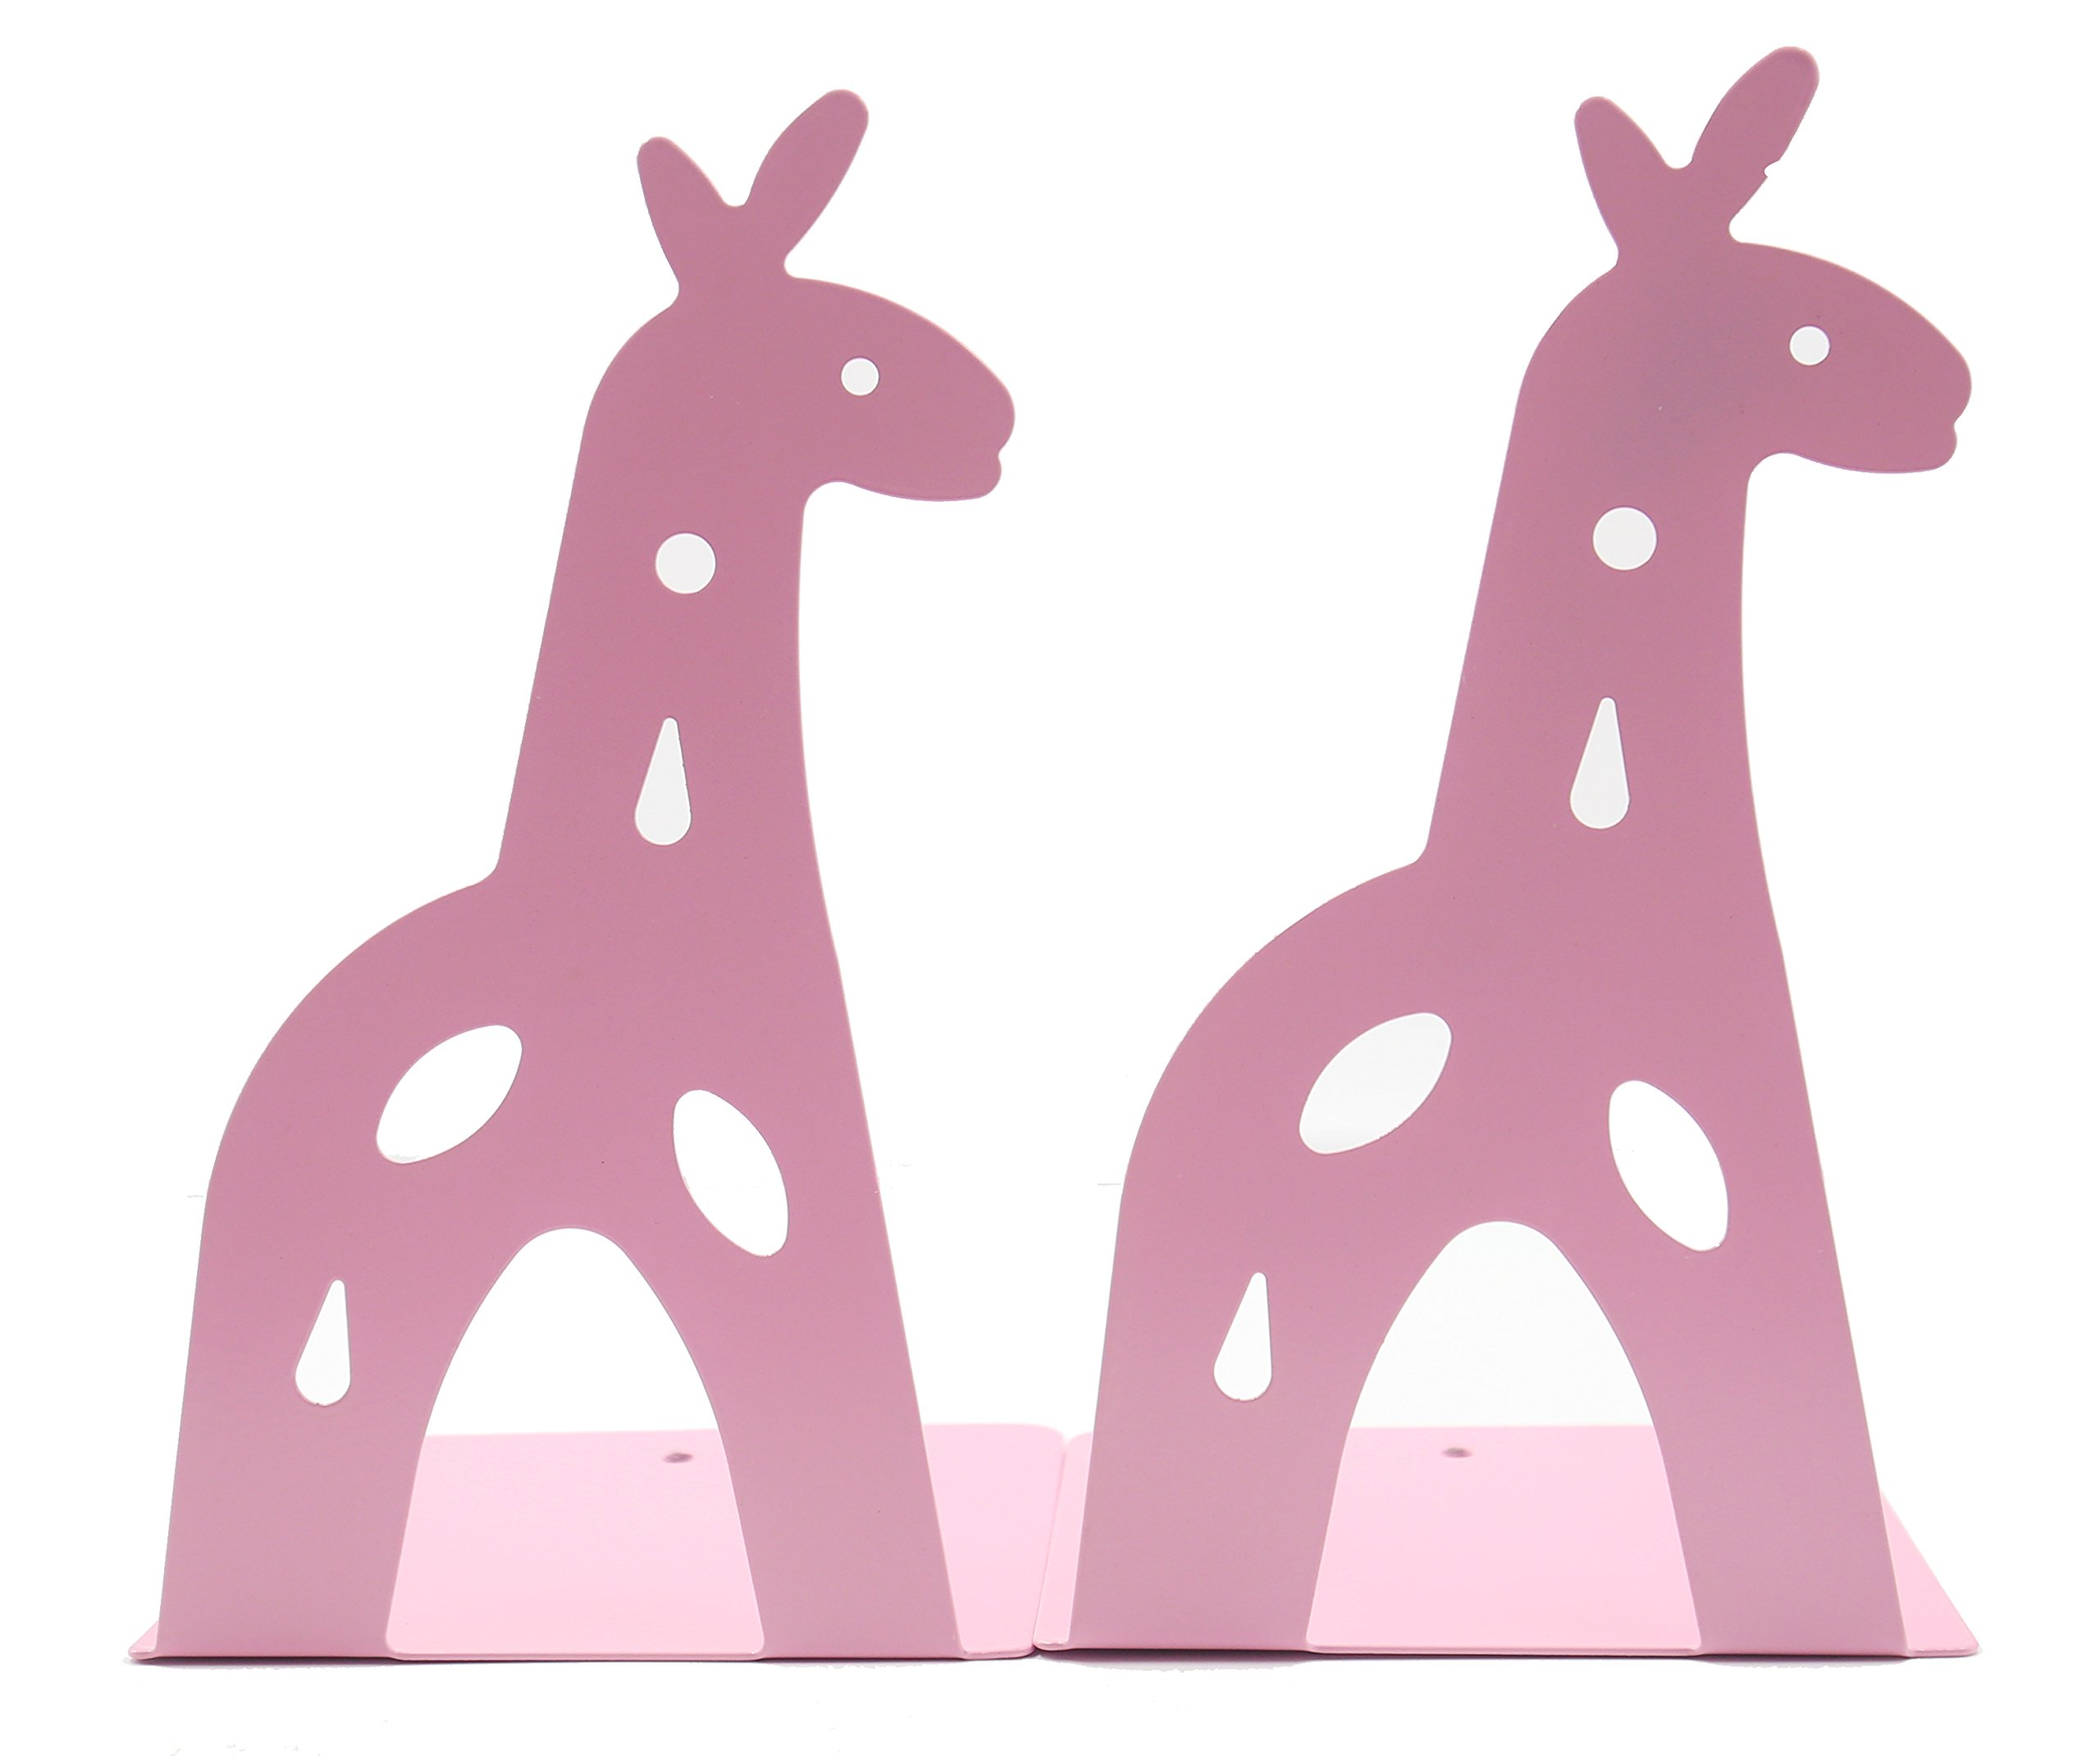 Y-H Cute Cartoon Giraff Iron Metal Bookends Nonskid Bookends Art Bookends for Office Home Desk Study Gift for Kids Girls Birthday Gifts(Pink)